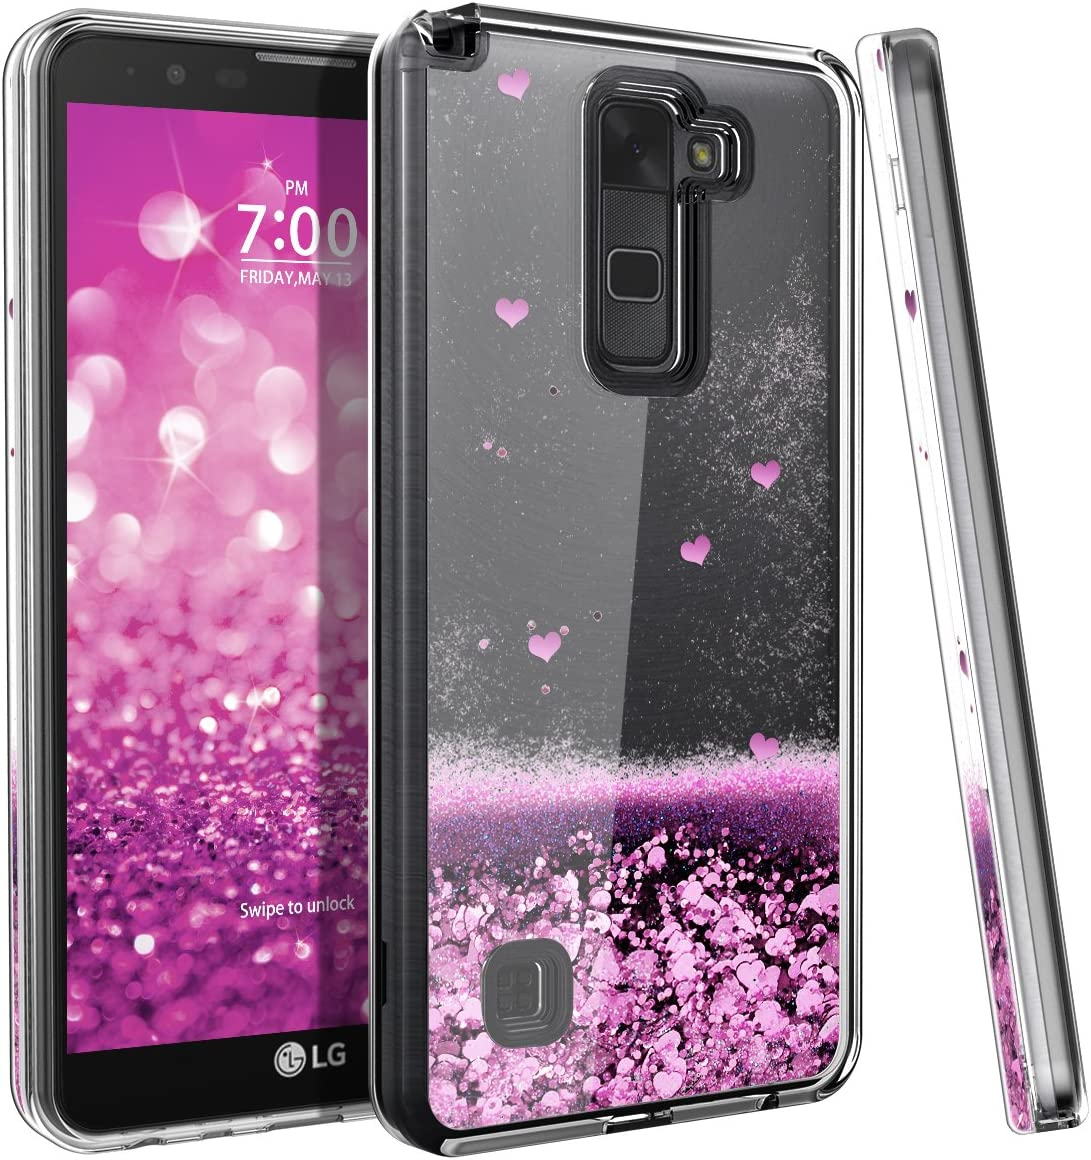 LG Stylo 2 Case, LG Stylo 2 Plus/Stylo 2 V/Stylus 2 / Stylus 2 Plus Case CinoCase Bling Glitter Liquid with 3D Moving Quicksand Love-Heart Design Protective Case for LG Stylo 2 (LS775) Pink